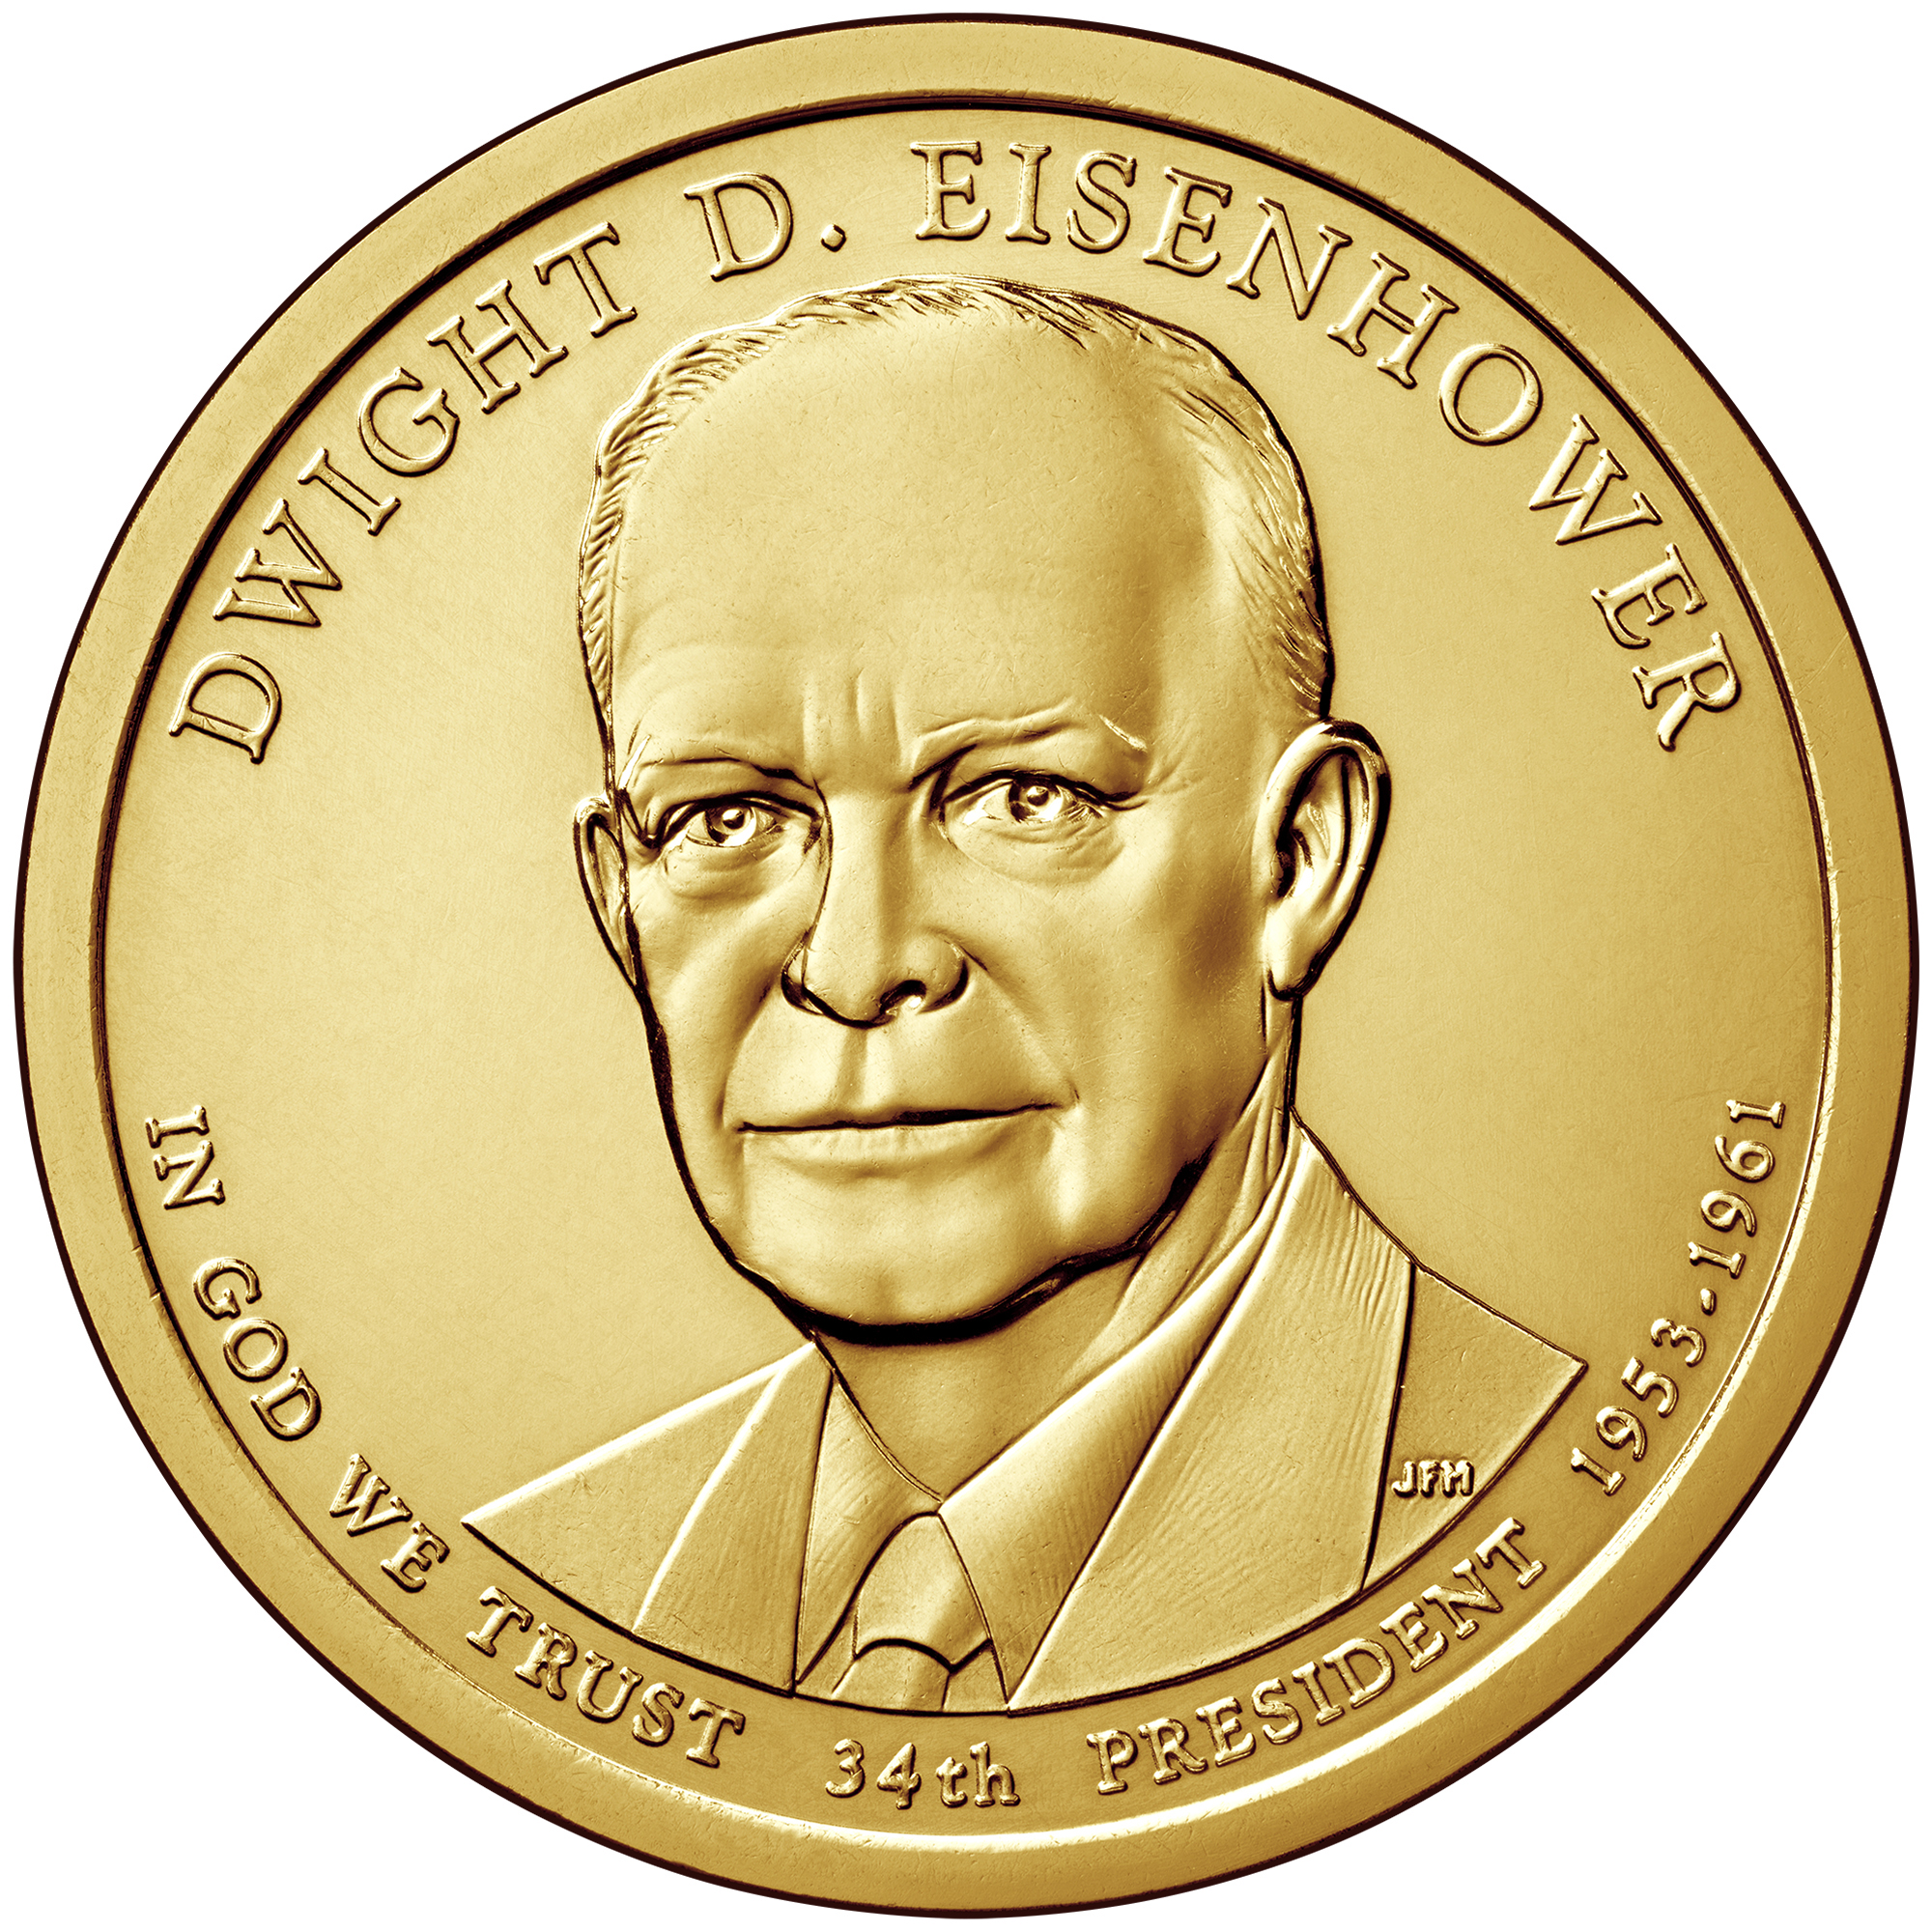 2015 Presidential Dollar Coin Dwight D. Eisenhower Uncirculated Obverse